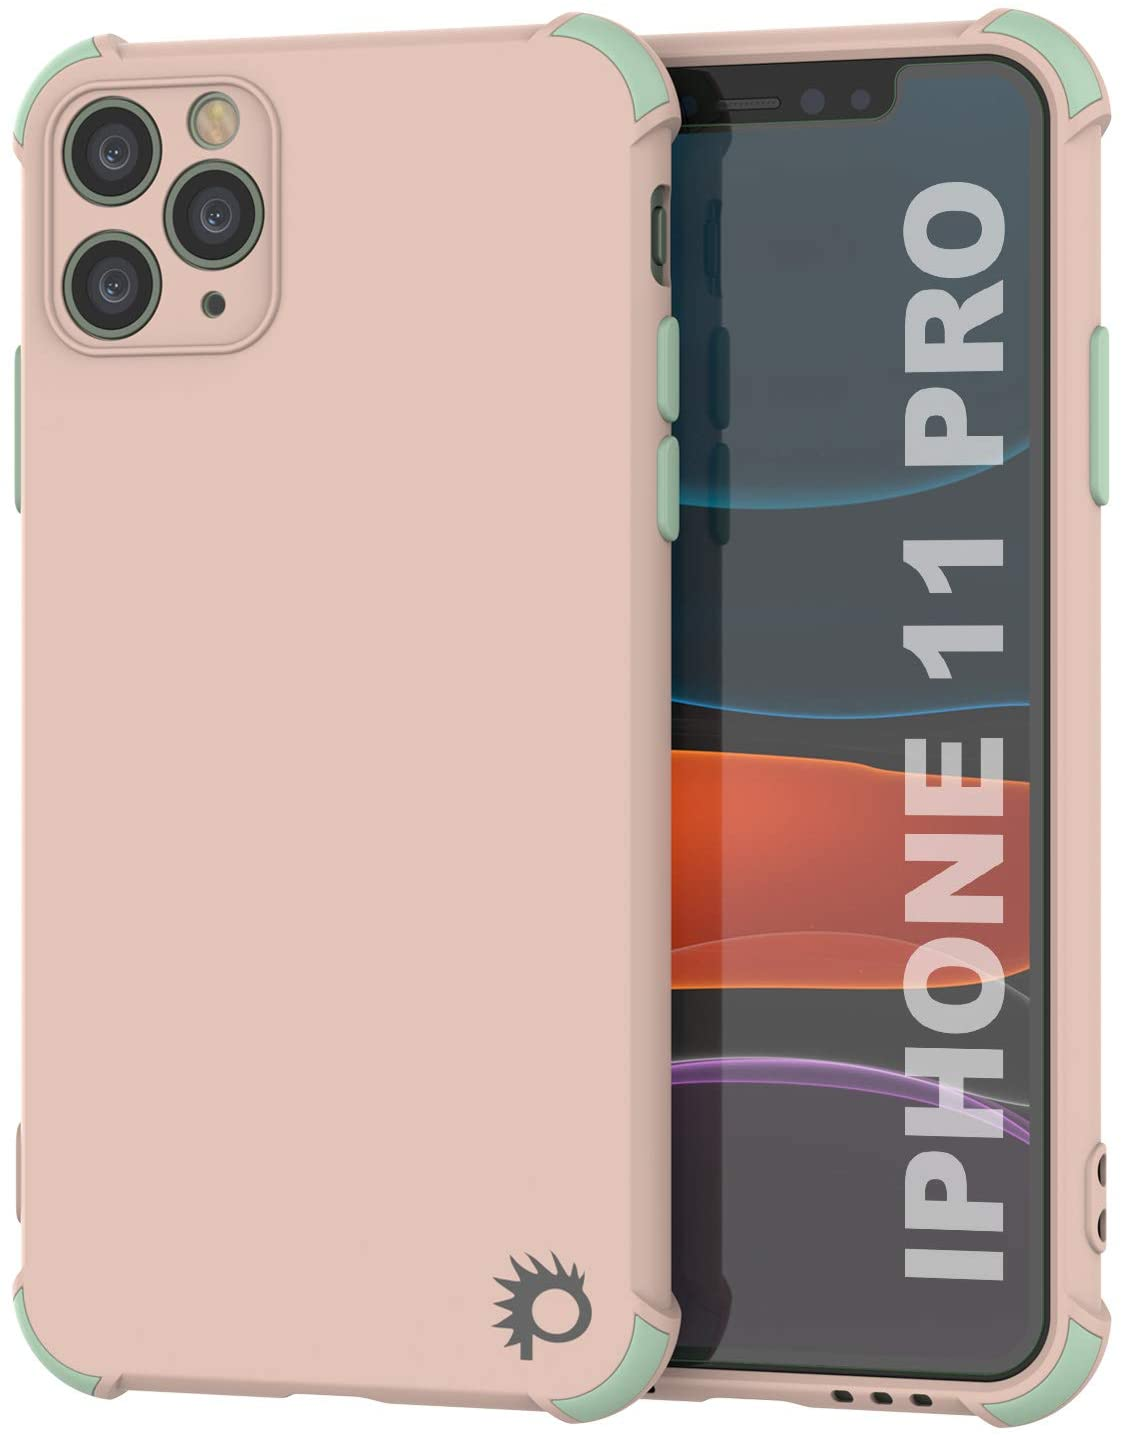 Punkcase Protective & Lightweight TPU Case [Sunshine Series] for iPhone 11 Pro [Pink]